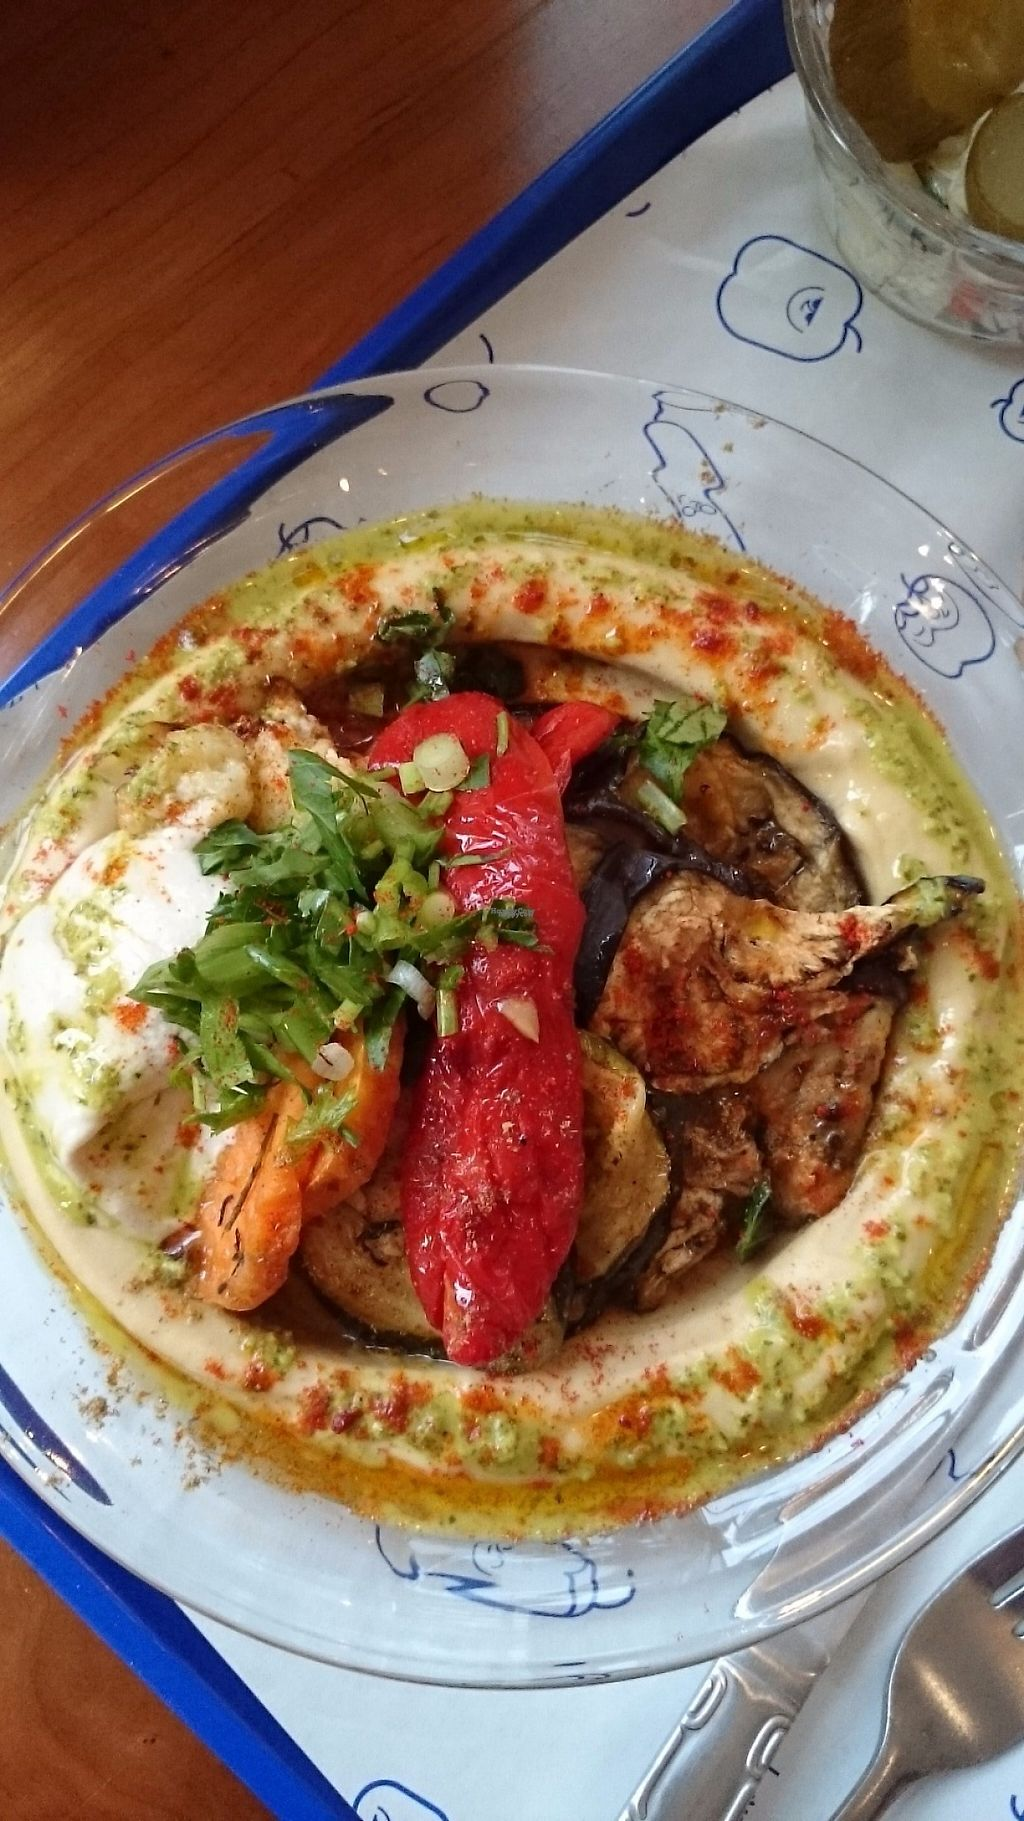 """Photo of Hummusology  by <a href=""""/members/profile/ZoraySpielvogel"""">ZoraySpielvogel</a> <br/>Vegetables Rave hummus plater.  <br/> December 25, 2016  - <a href='/contact/abuse/image/84450/204661'>Report</a>"""